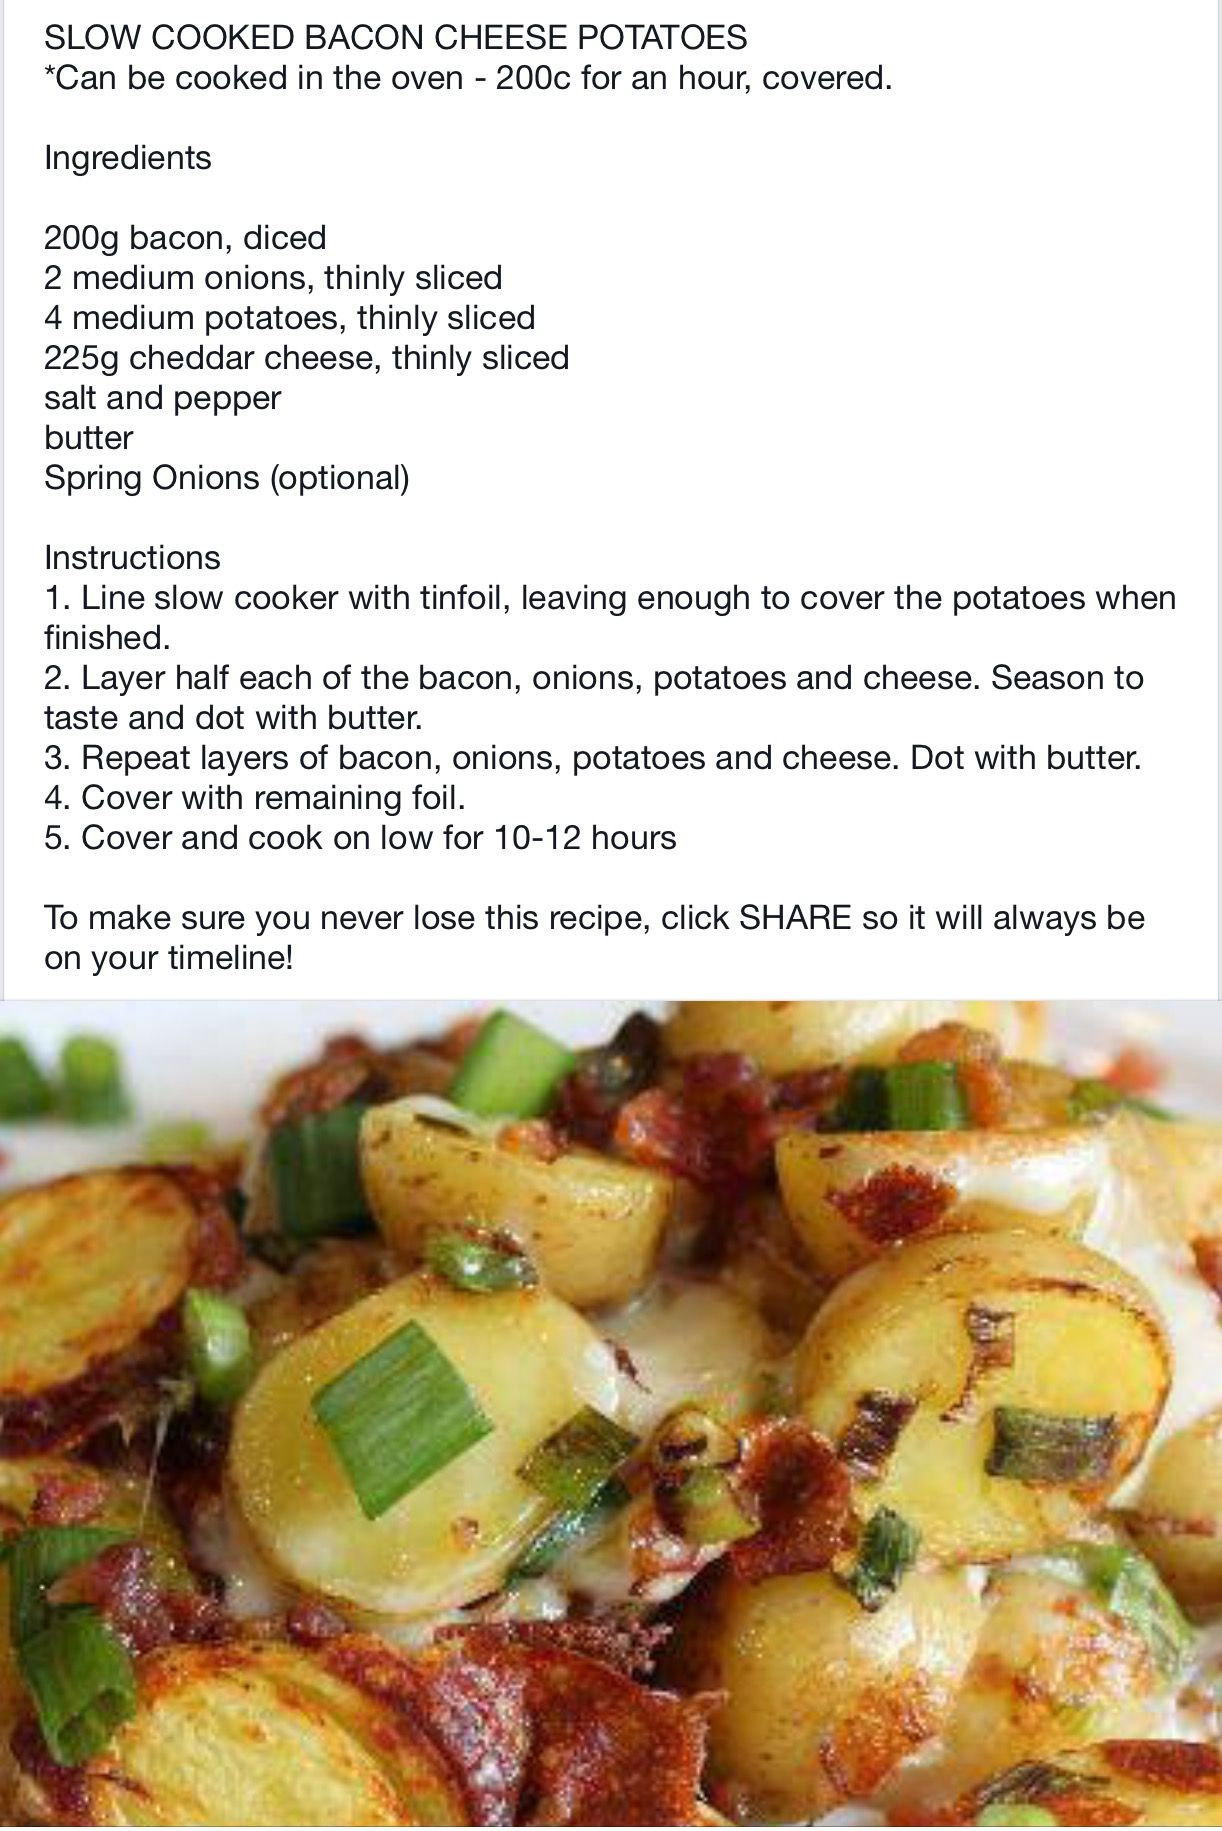 Explore Bacon Cheese Potatoes, Vegetable Recipes, And More!